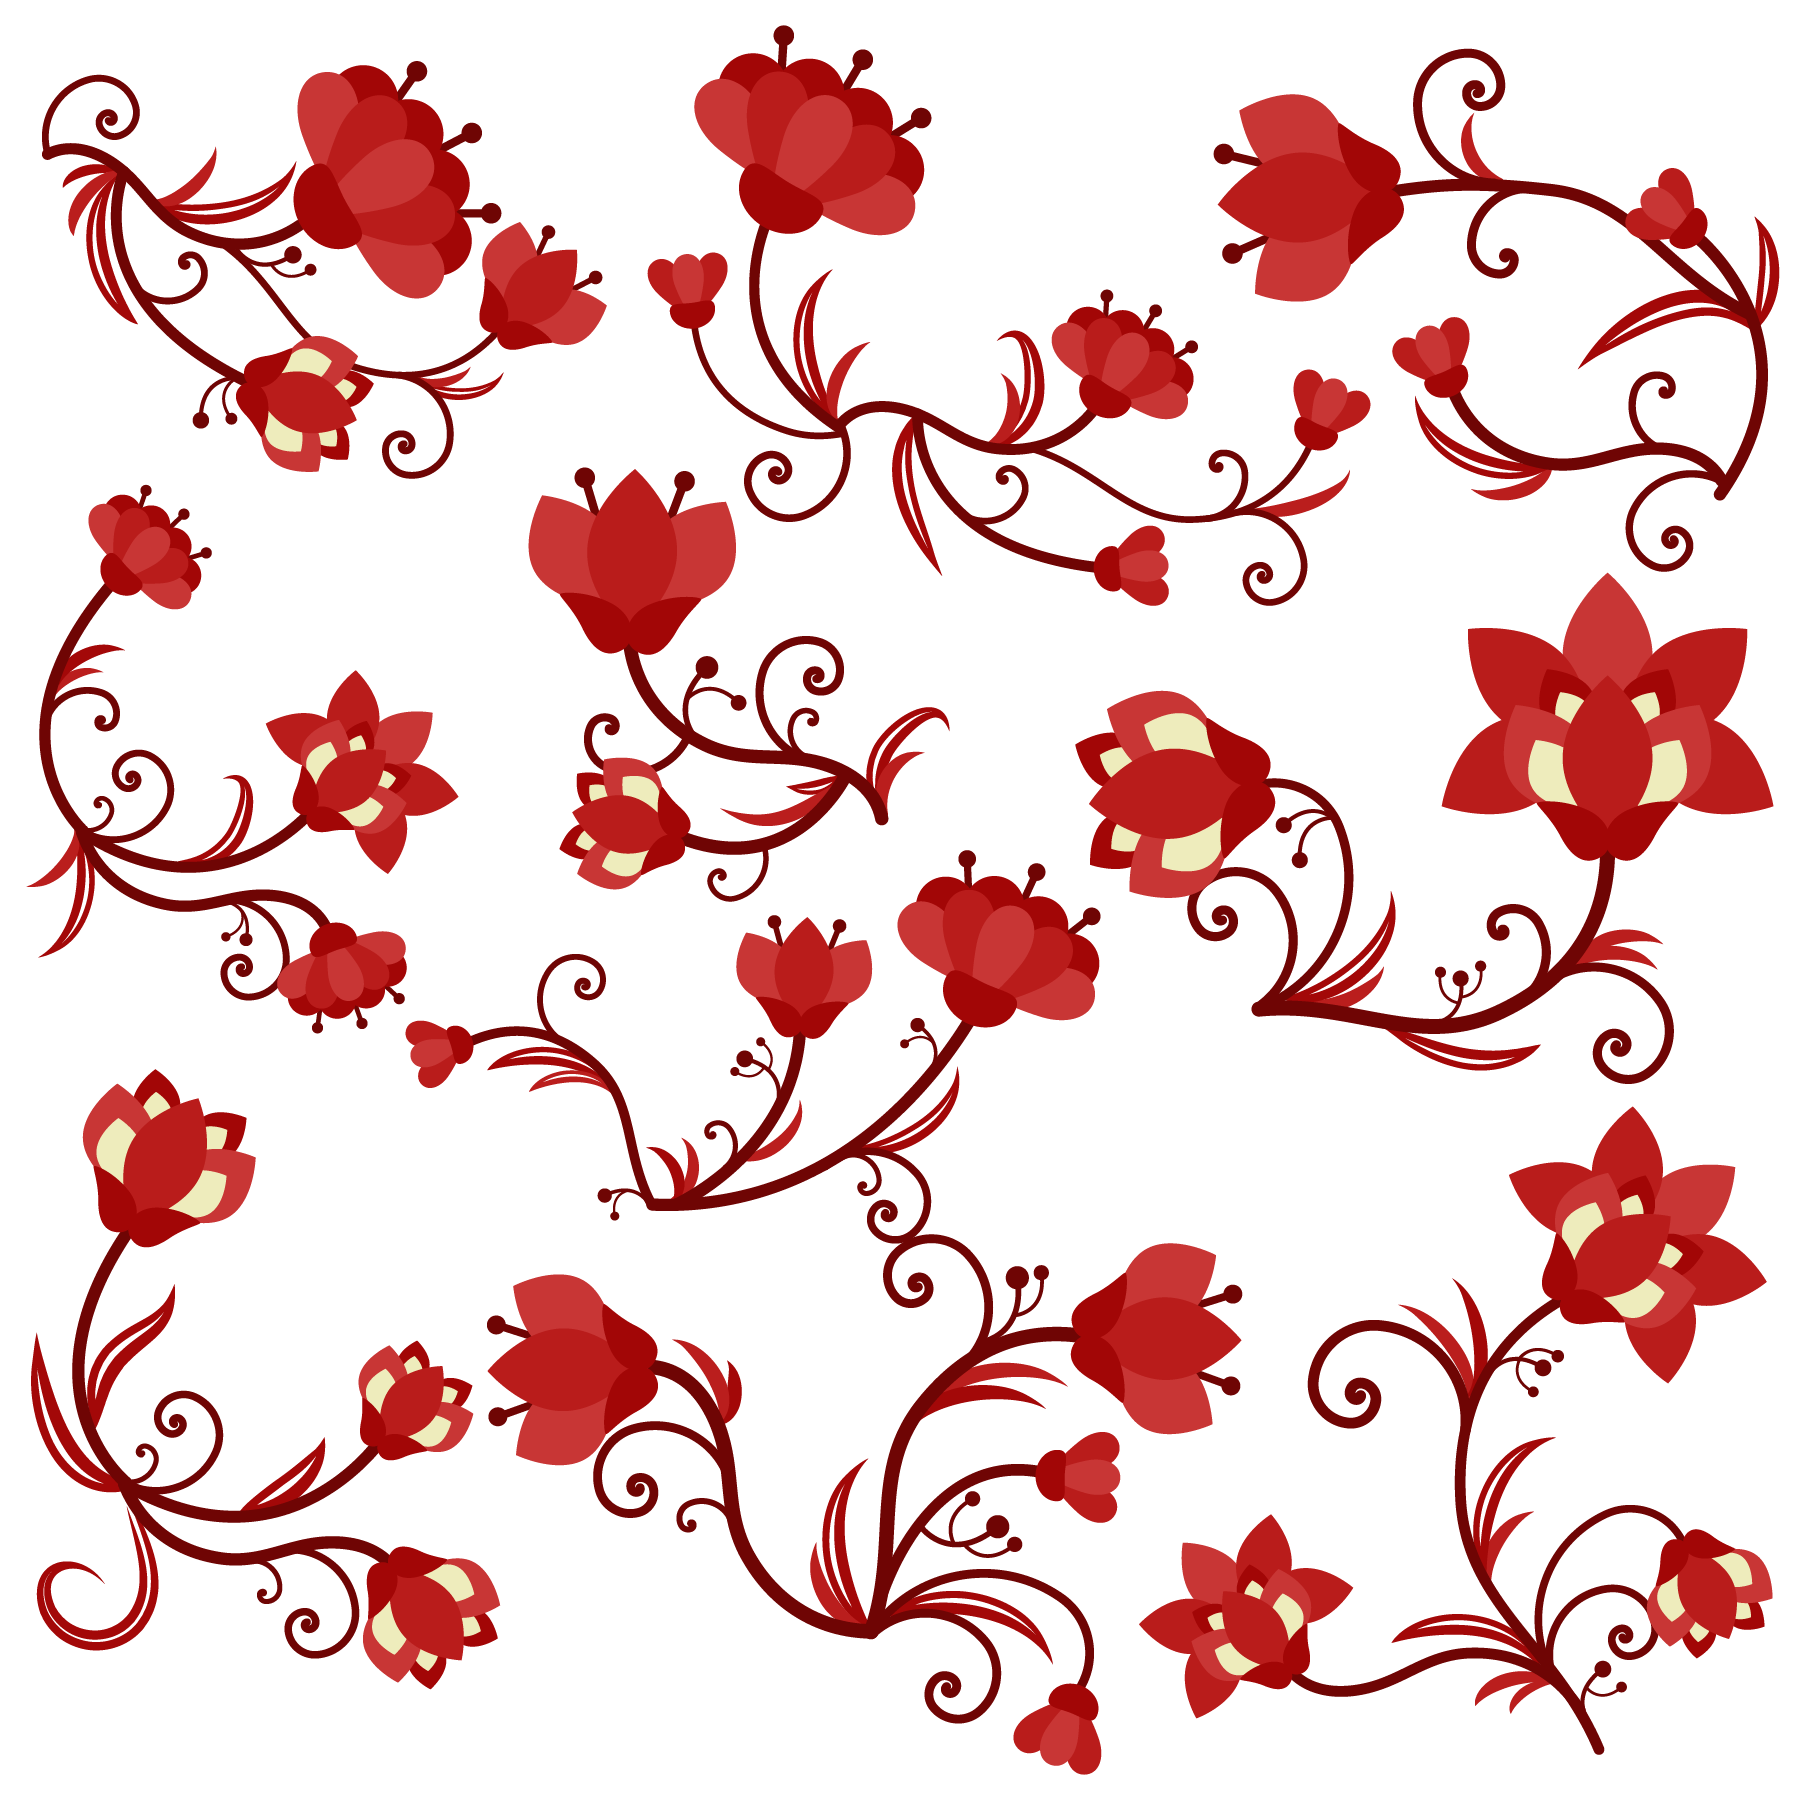 Embroidery Png - Semi Exclusive Art for Embroidery Digitizing Crafting and More